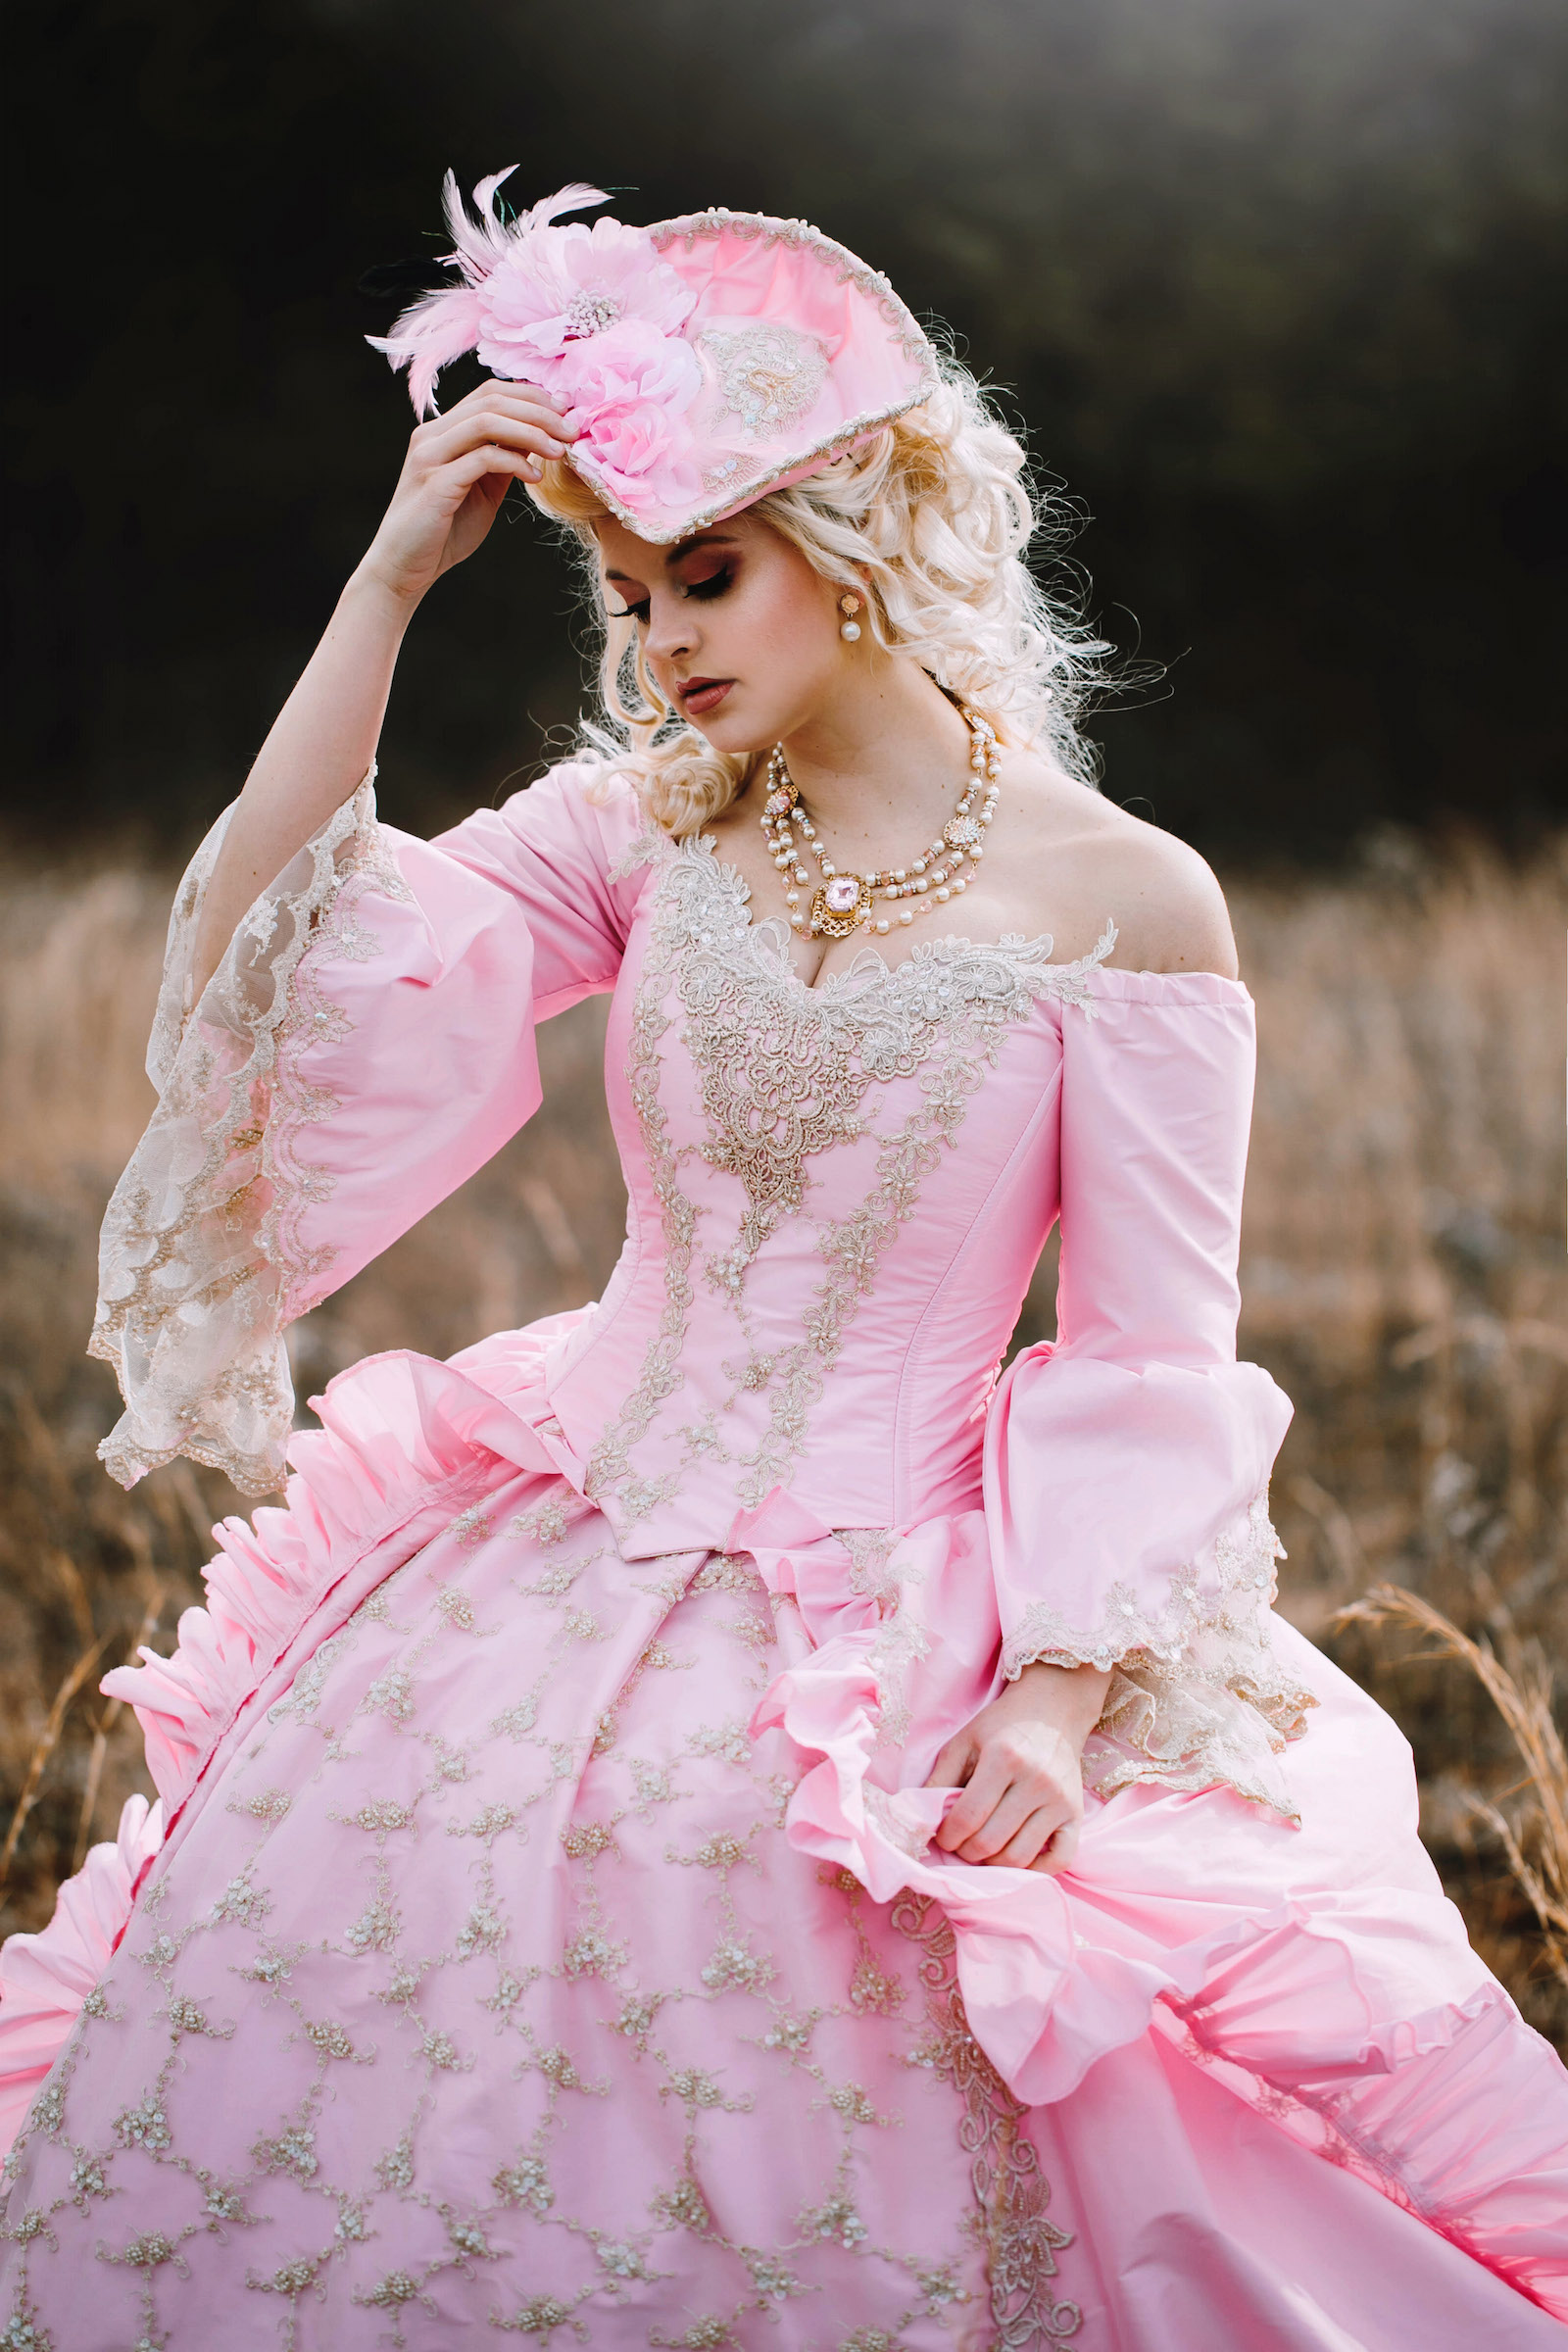 Medieval wedding gowns marie antoinette gowns gothic wedding gowns we offer our own line of custom gowns and one of a kind gowns renaissance victorian marie antoinette gowns rococo 18th century etcrfect for junglespirit Gallery